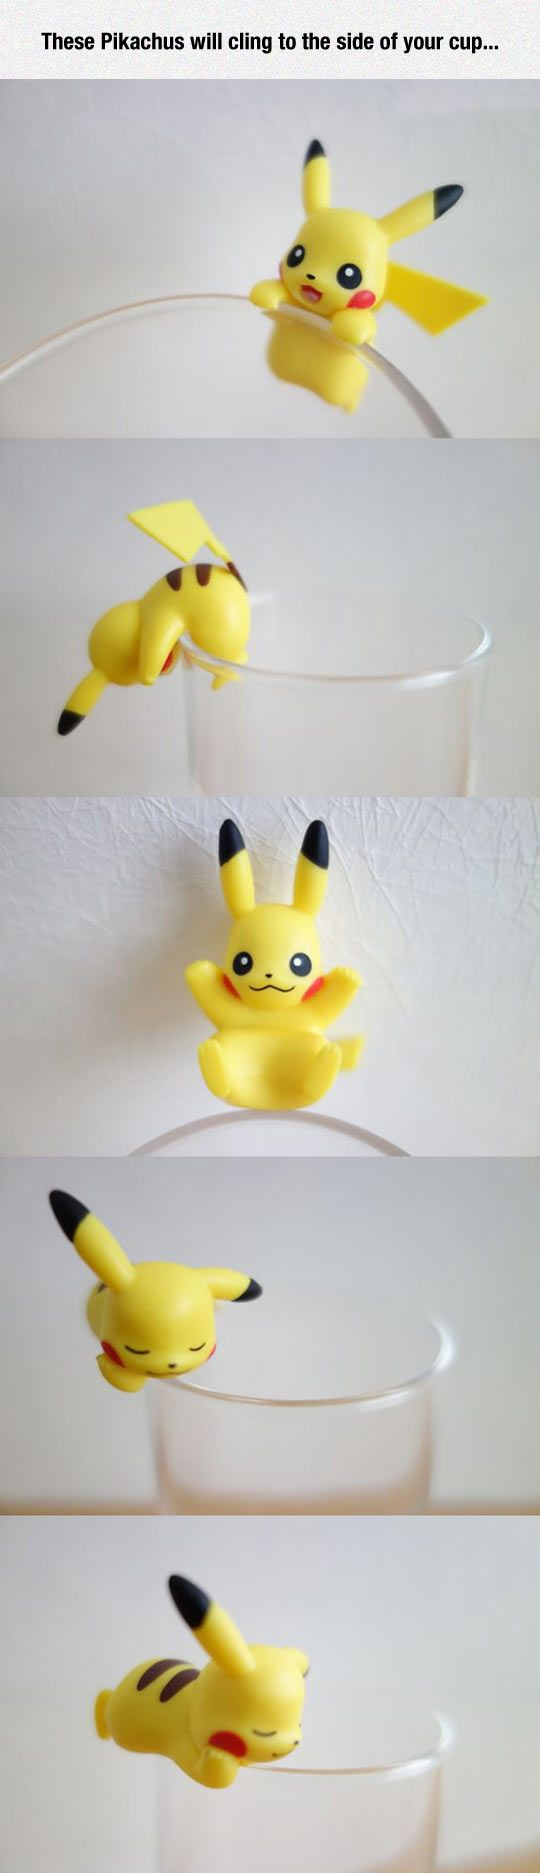 I Love This Pikachu